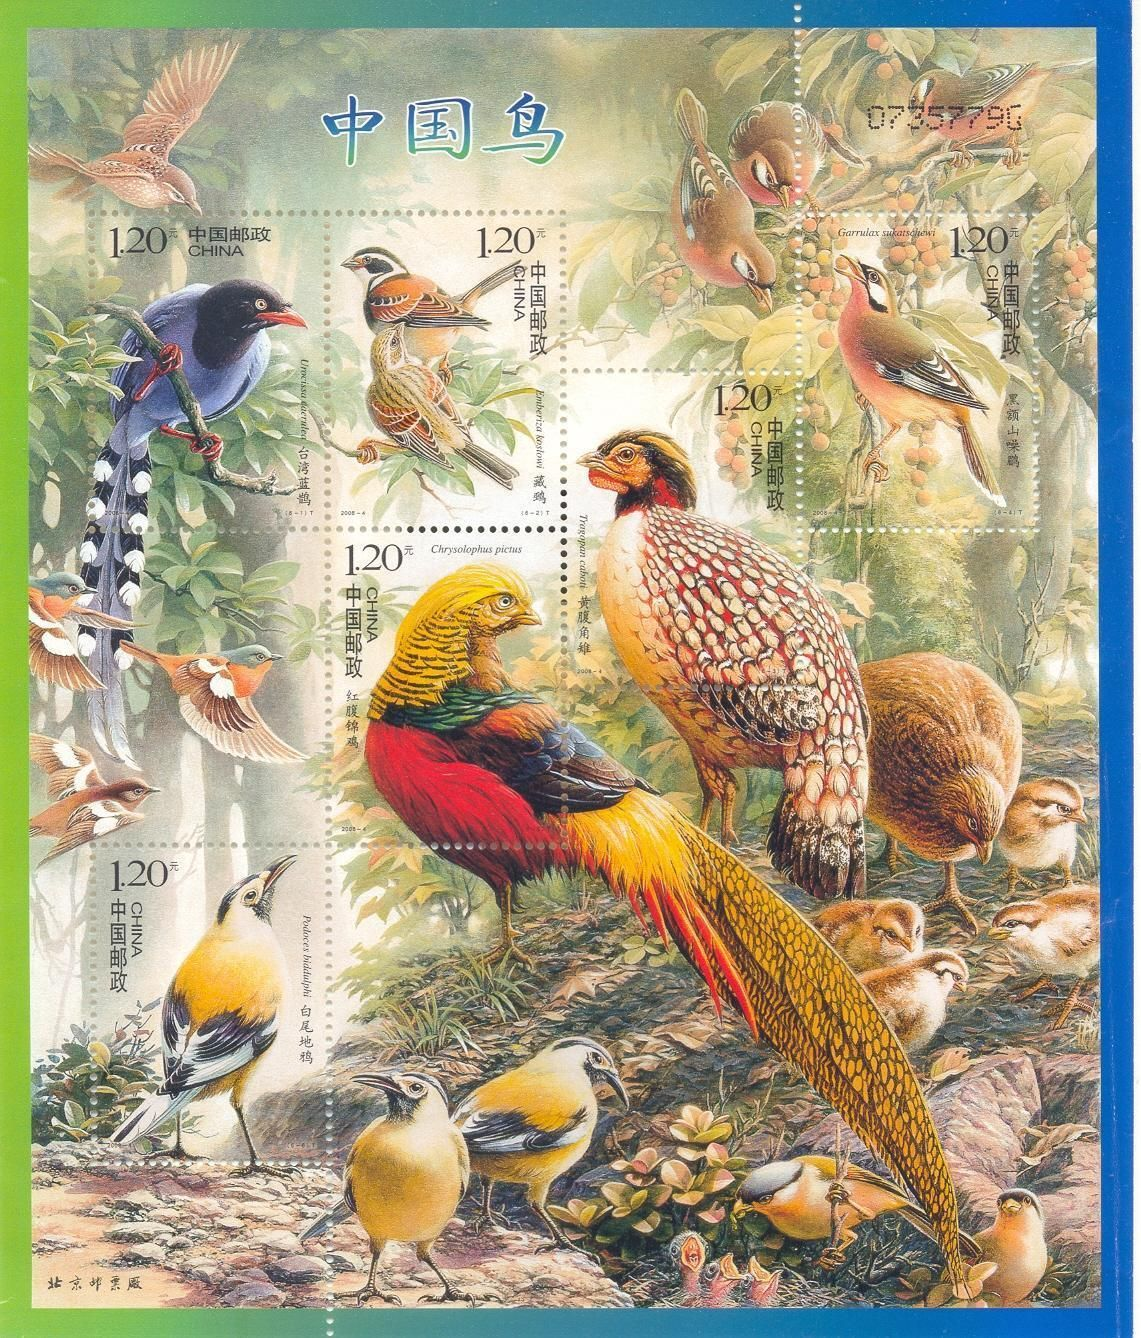 All Types Of Birds Fan Art China Bird Stamps Birds Bird Stamp Stamp